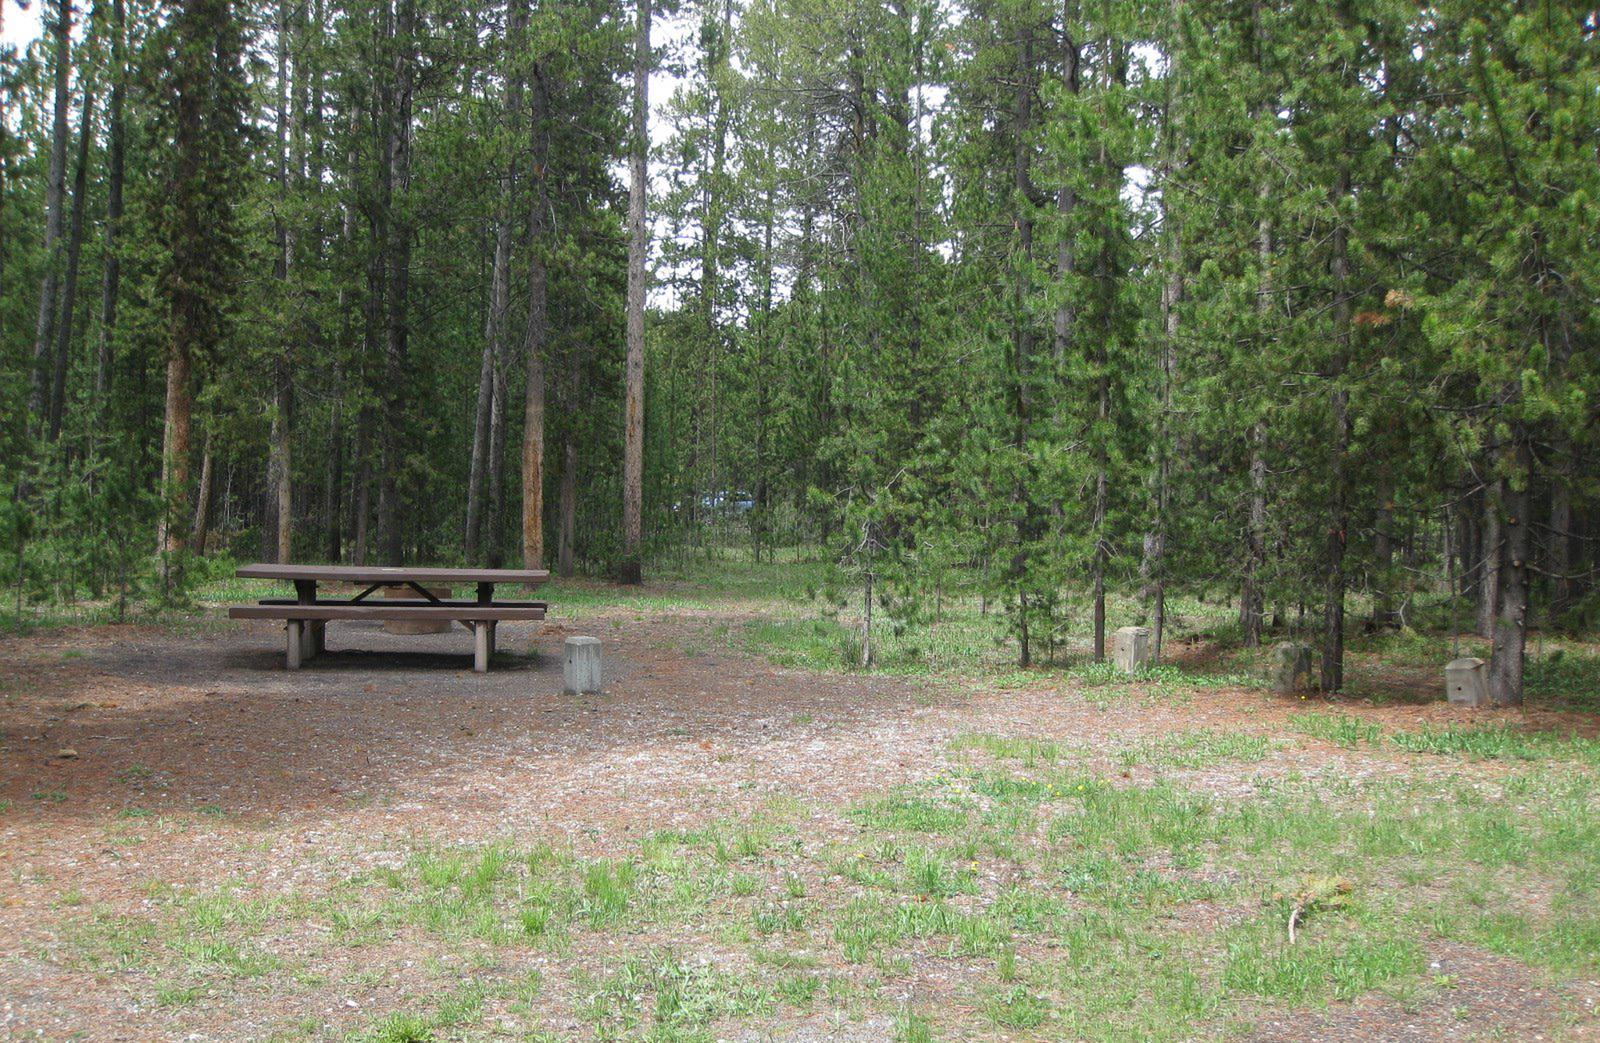 Site D2, surrounded by pine trees, picnic table & fire ringSite D2